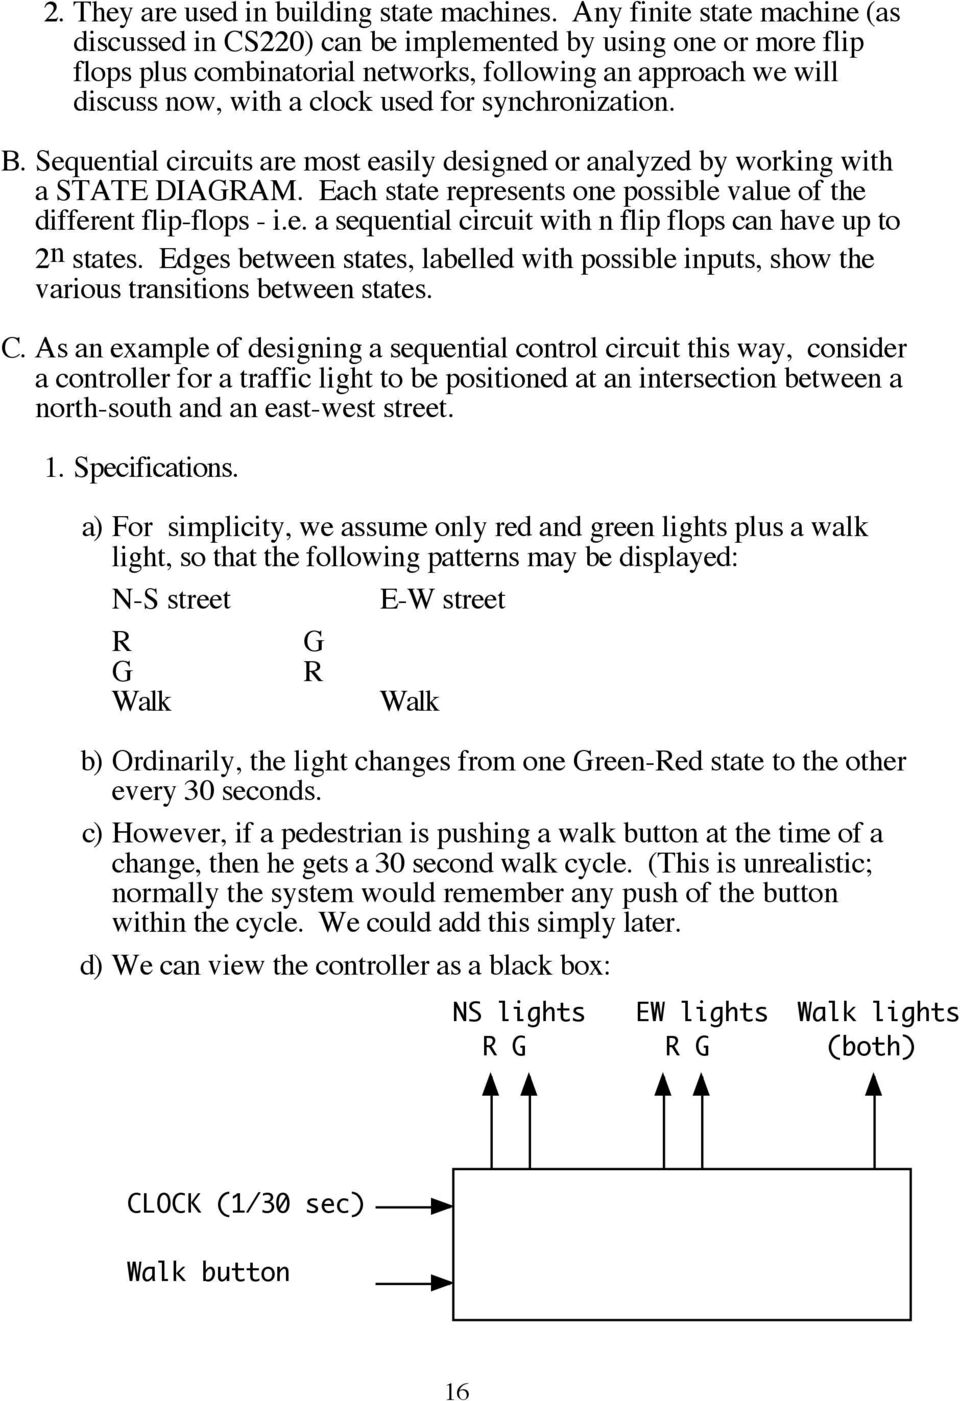 Cs311 Lecture Sequential Circuits Pdf Flip Flops Circuit B Are Most Easily Designed Or Analyzed By Working With A